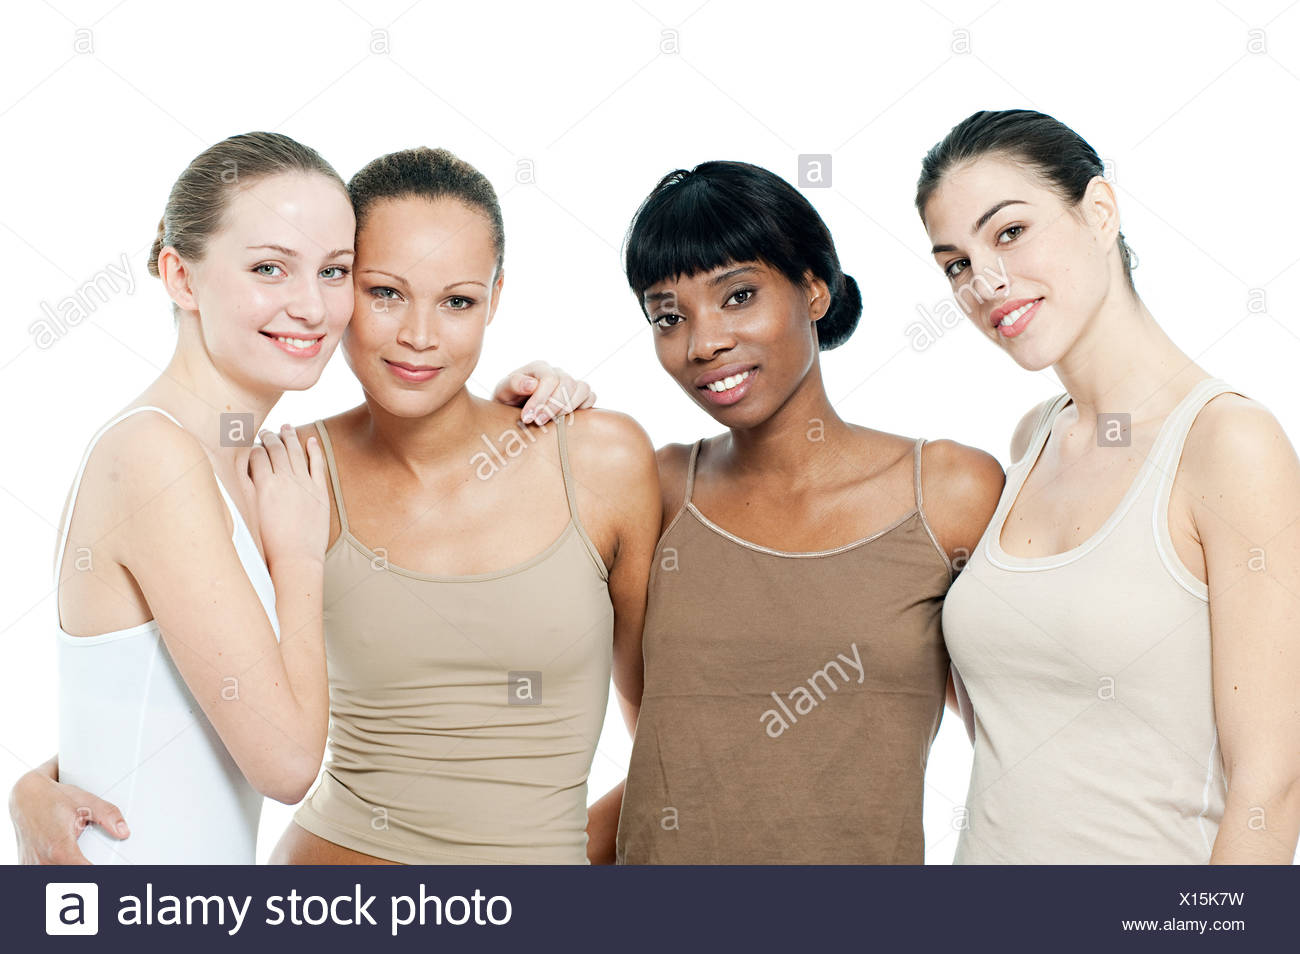 Four young women together - Stock Image